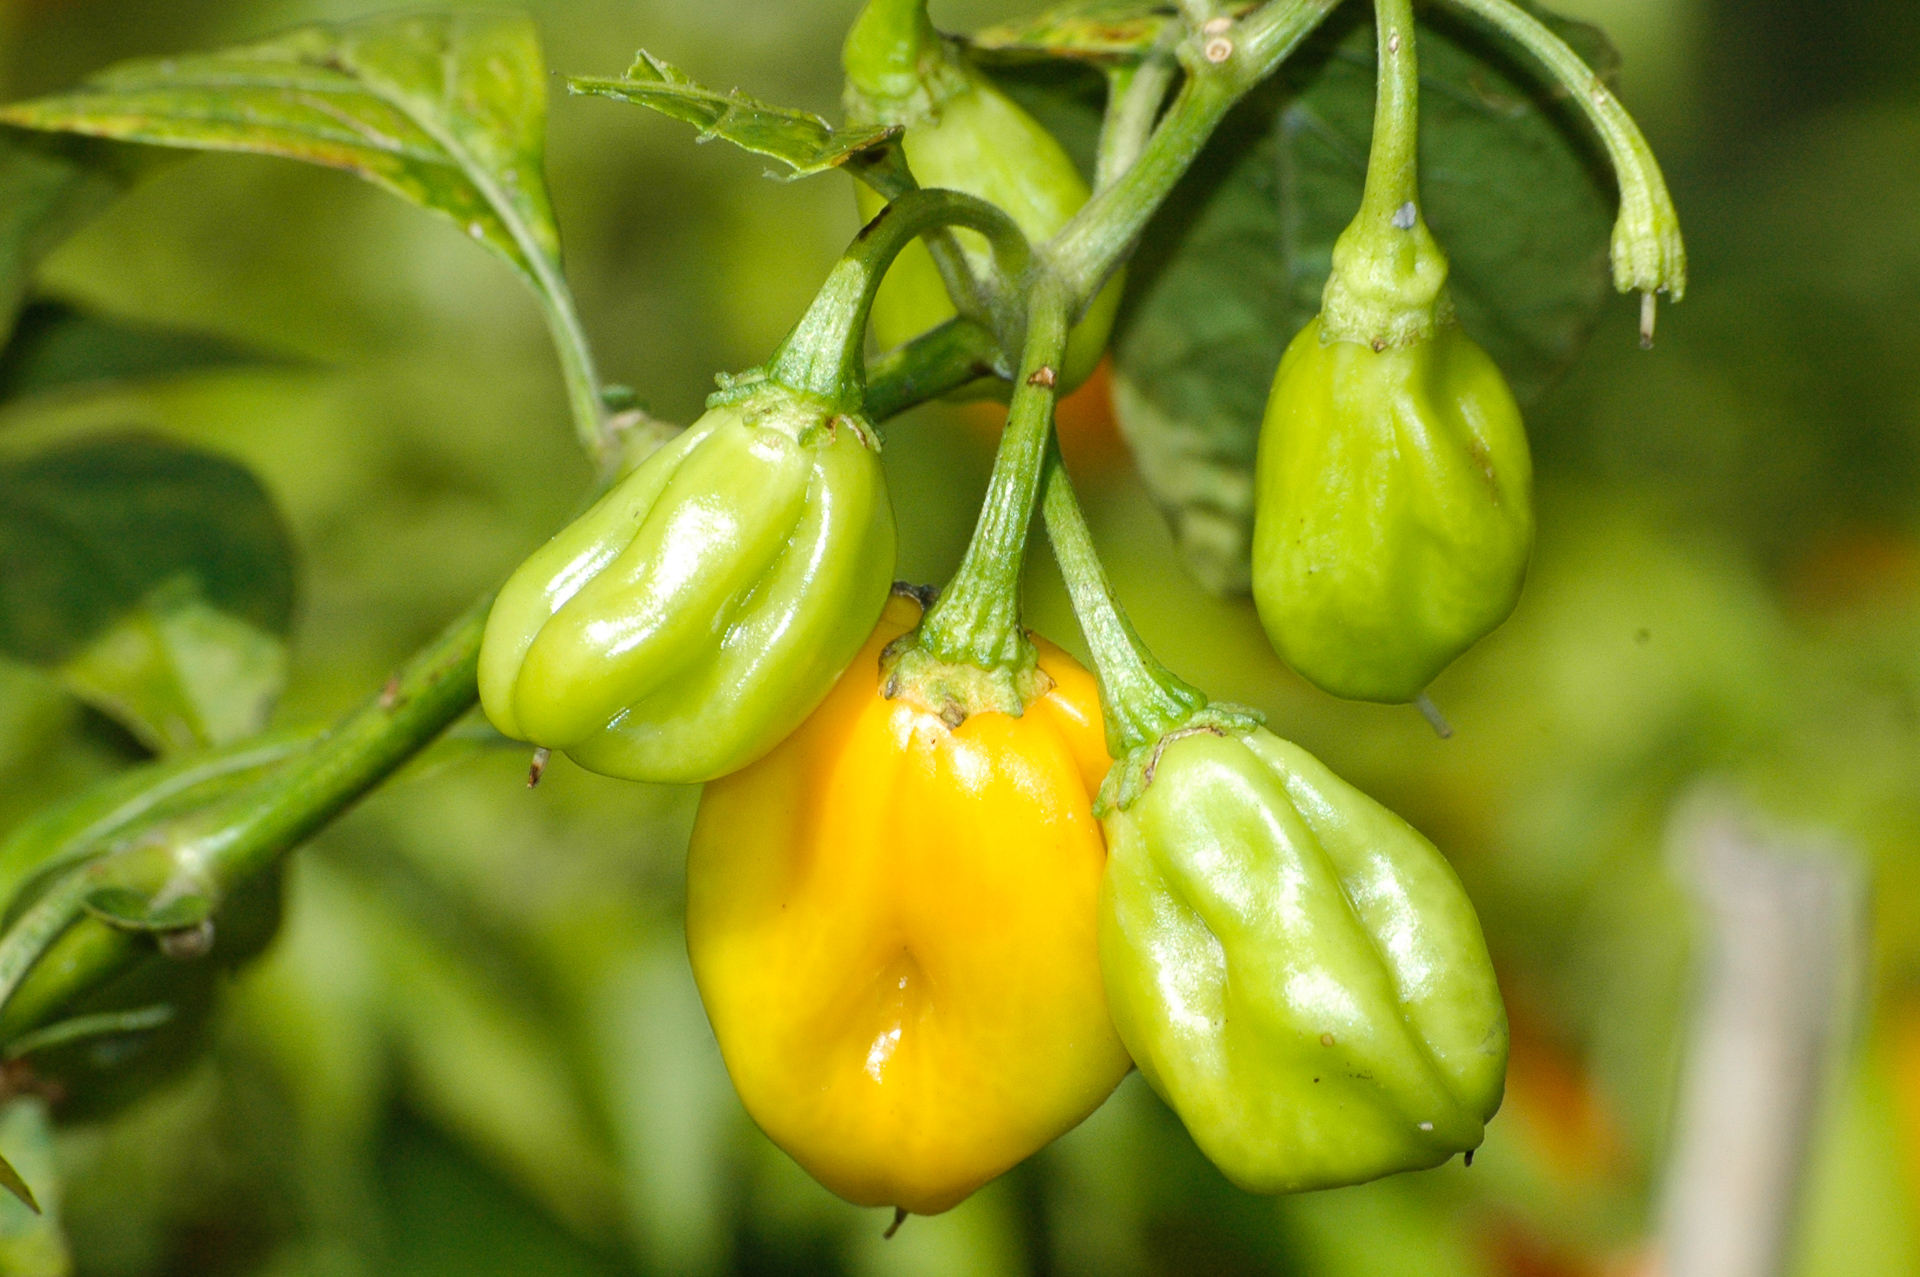 PI 653679 - Capsicum frutescens - Chilisorte